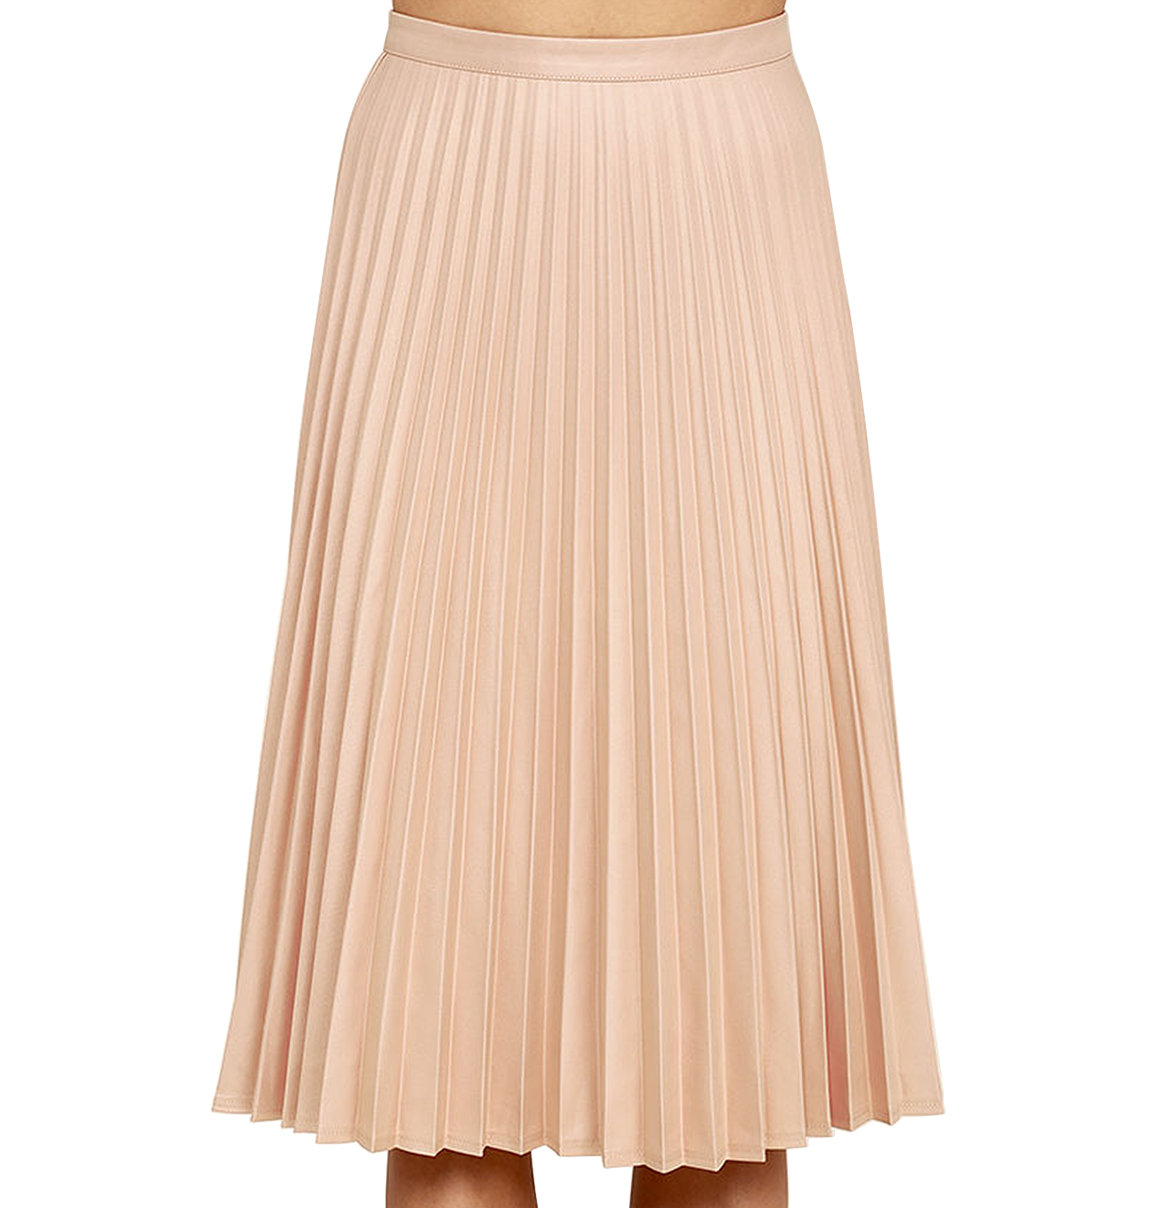 Lulus Like a Phenomenon Pleated Midi Skirt